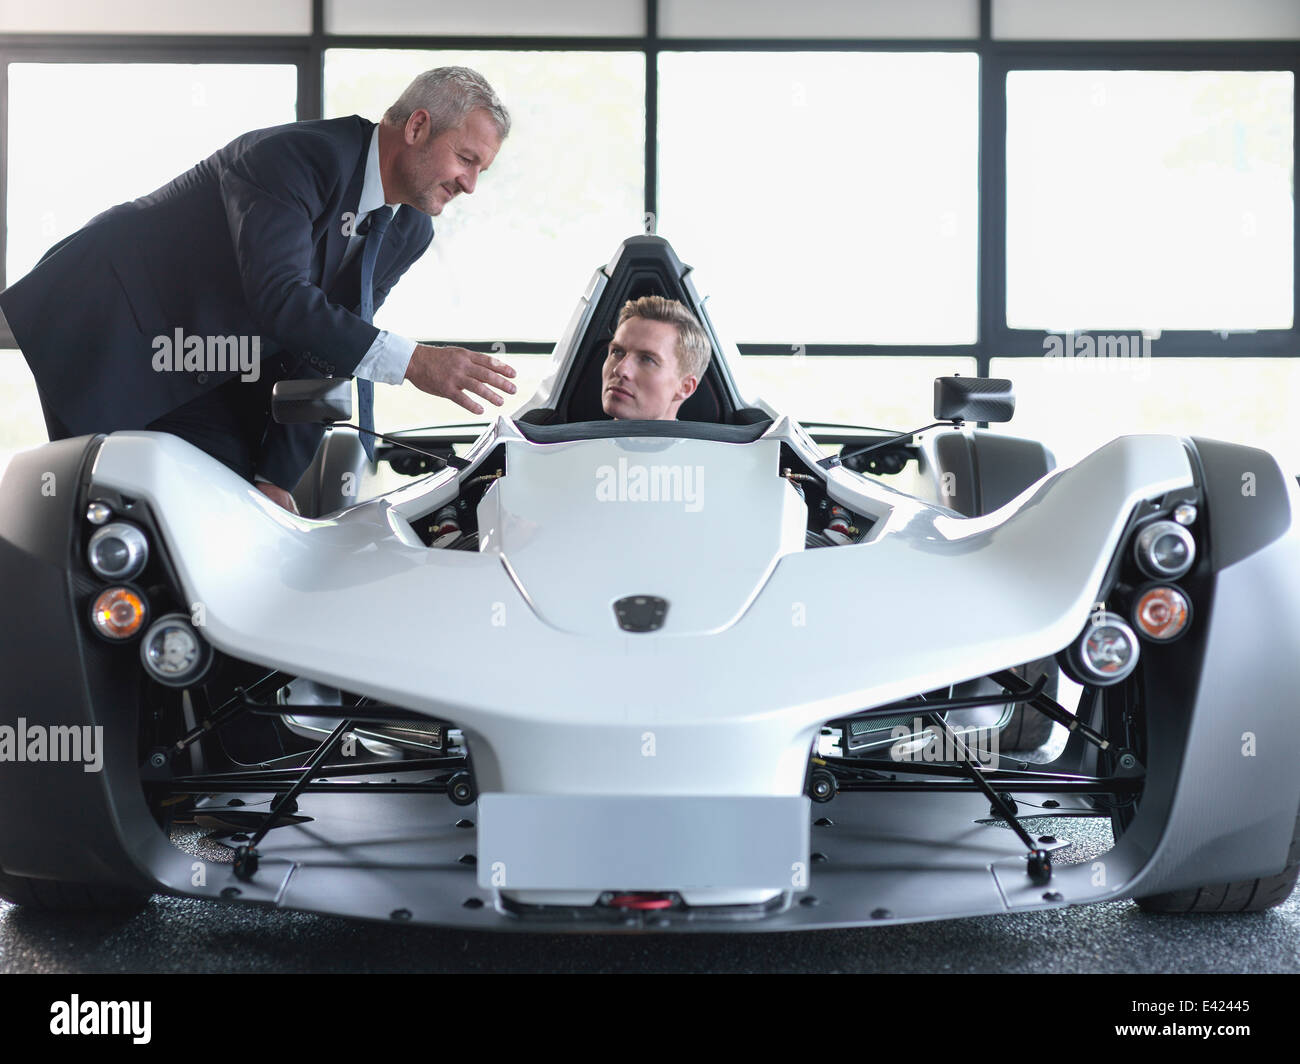 Salesman showing customer supercar in show room - Stock Image